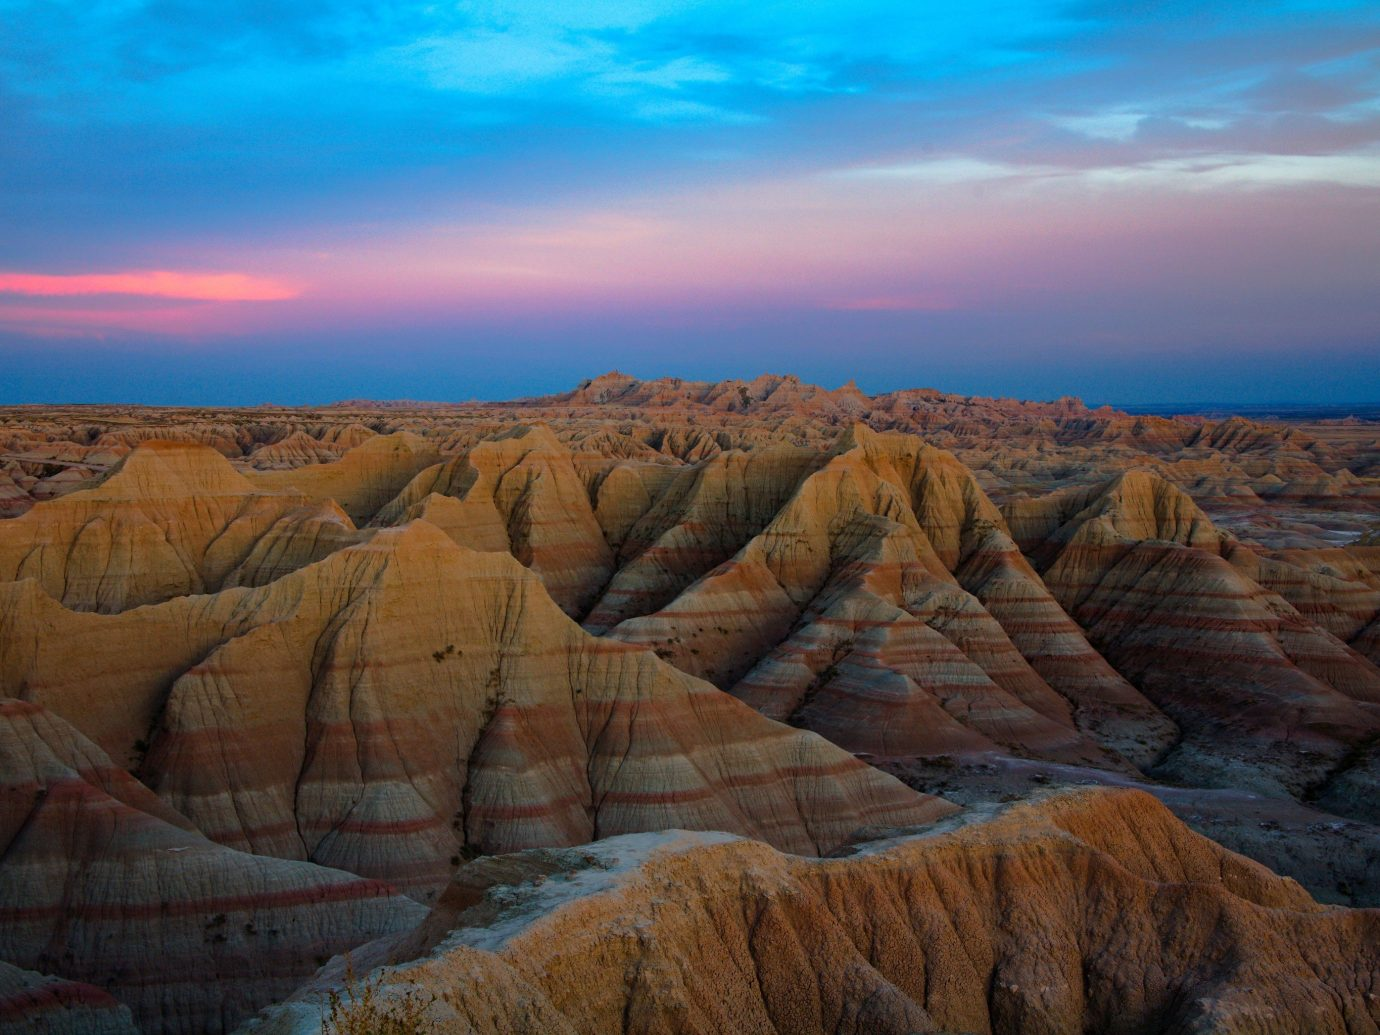 National Parks Outdoors + Adventure Trip Ideas sky Nature valley outdoor geographical feature canyon landform natural environment wilderness badlands horizon rock sunrise Sunset mountain landscape butte plateau wadi cliff geology terrain Sea Coast formation dawn overlooking